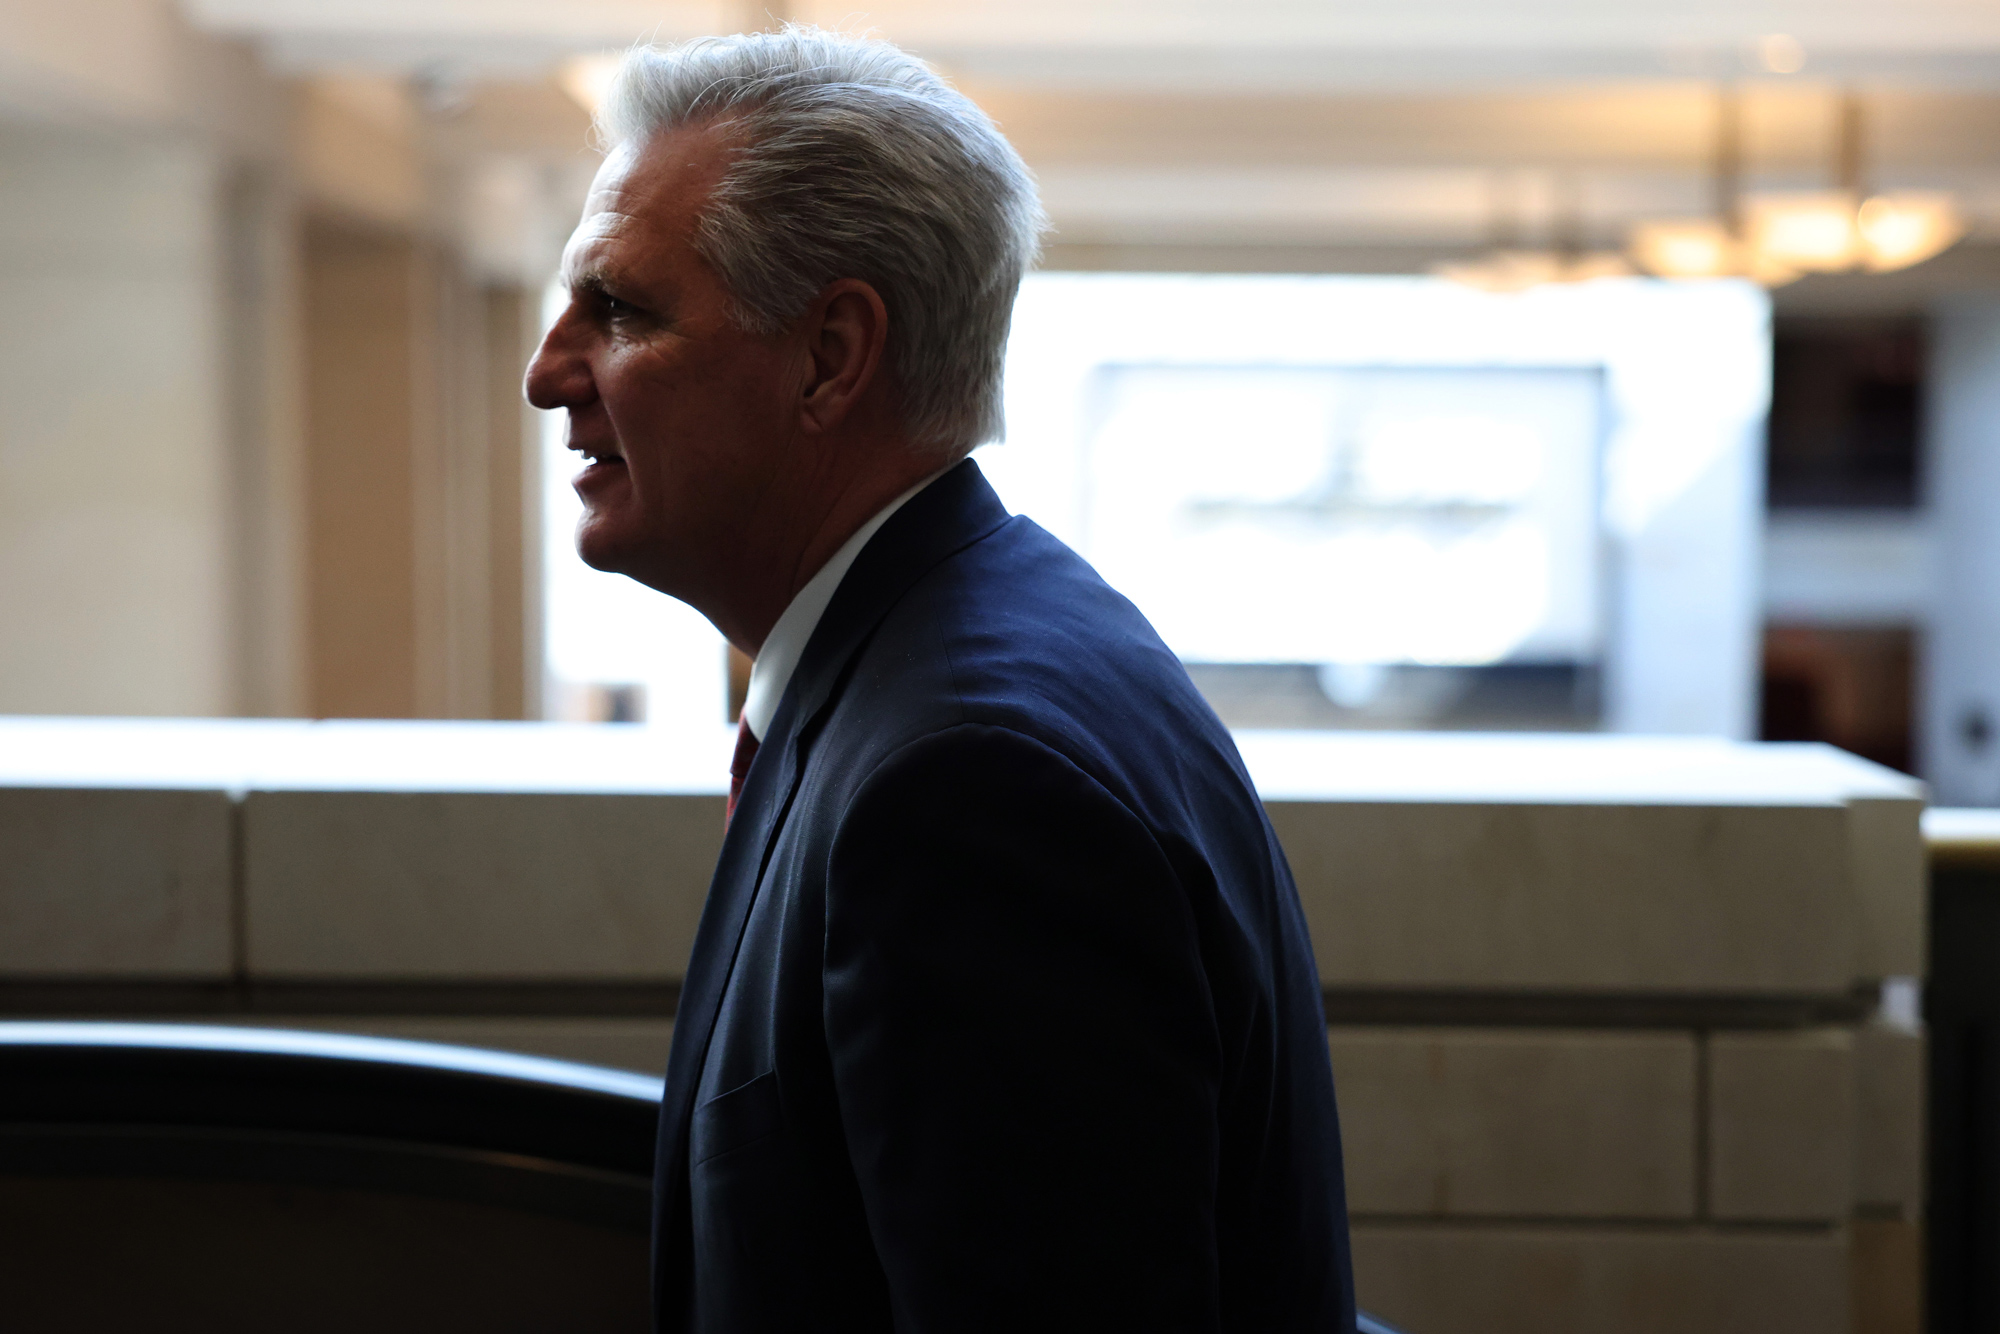 House Minority Leader Kevin McCarthy takes an escalator in the U.S. Capitol Visitors Center on May 14 in Washington, DC.